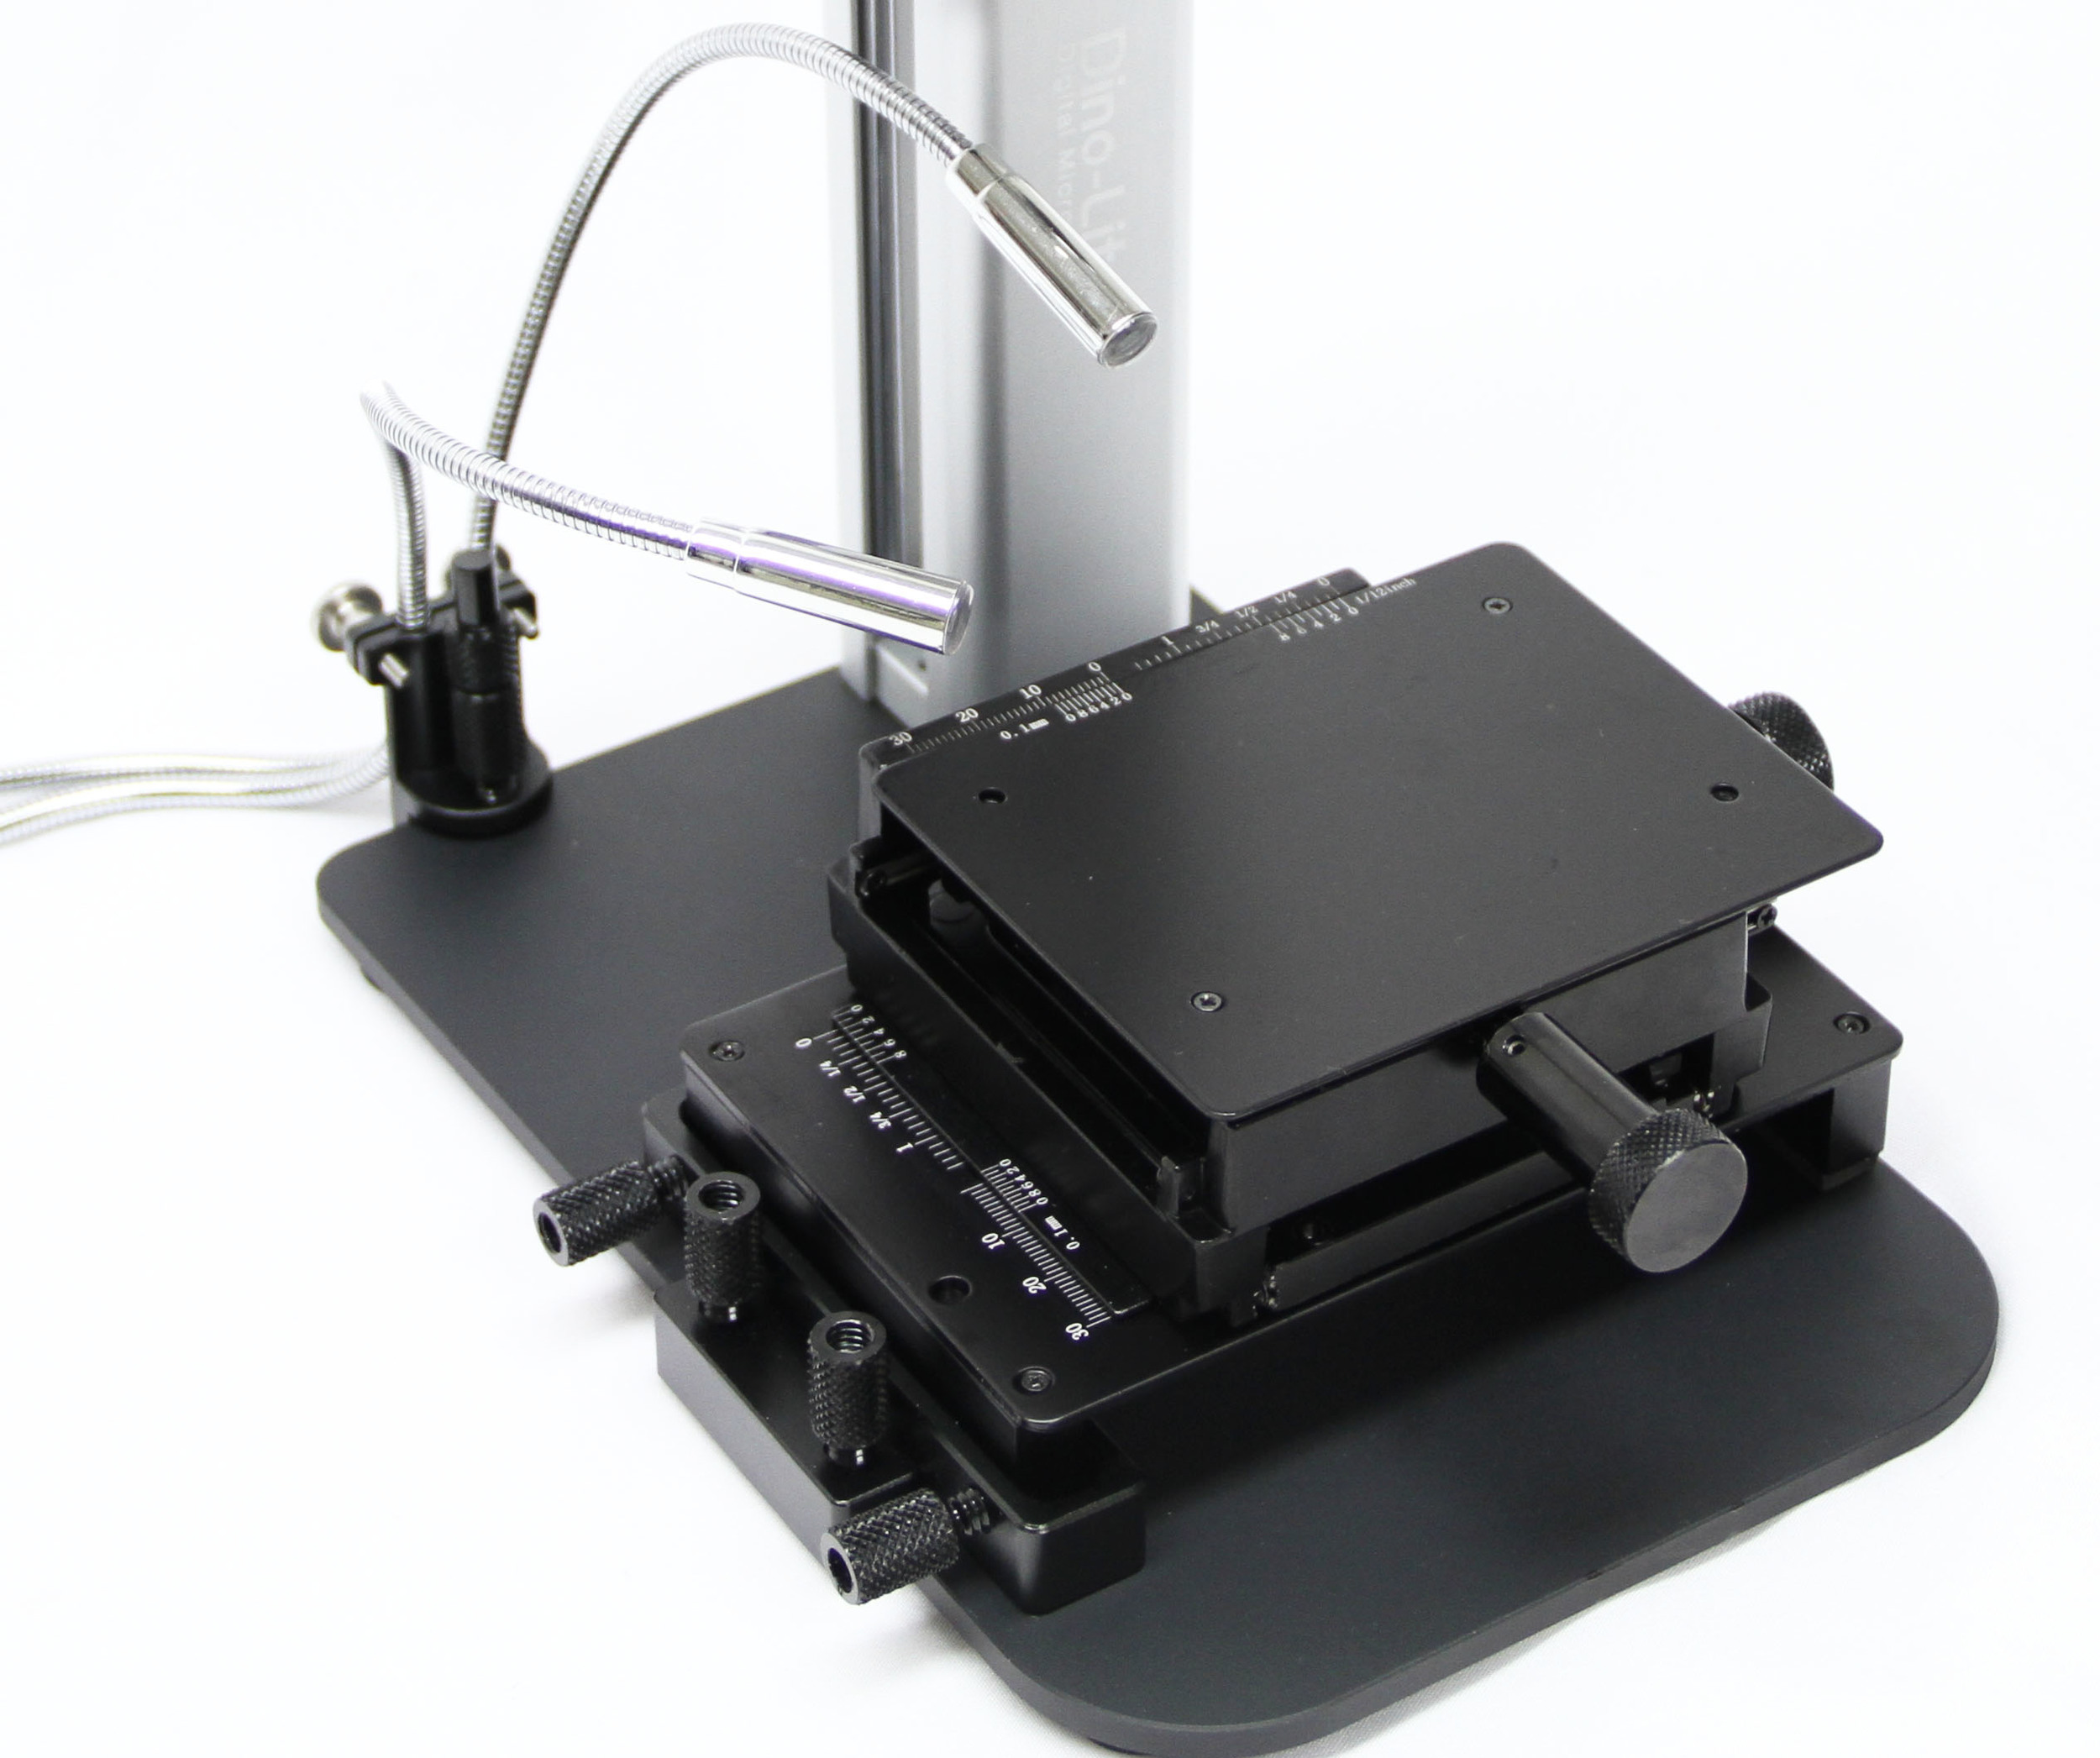 The MSAK812 dual articulating LEDs shown attached to the RK-10A stand with MS15X-S2 XY platform.